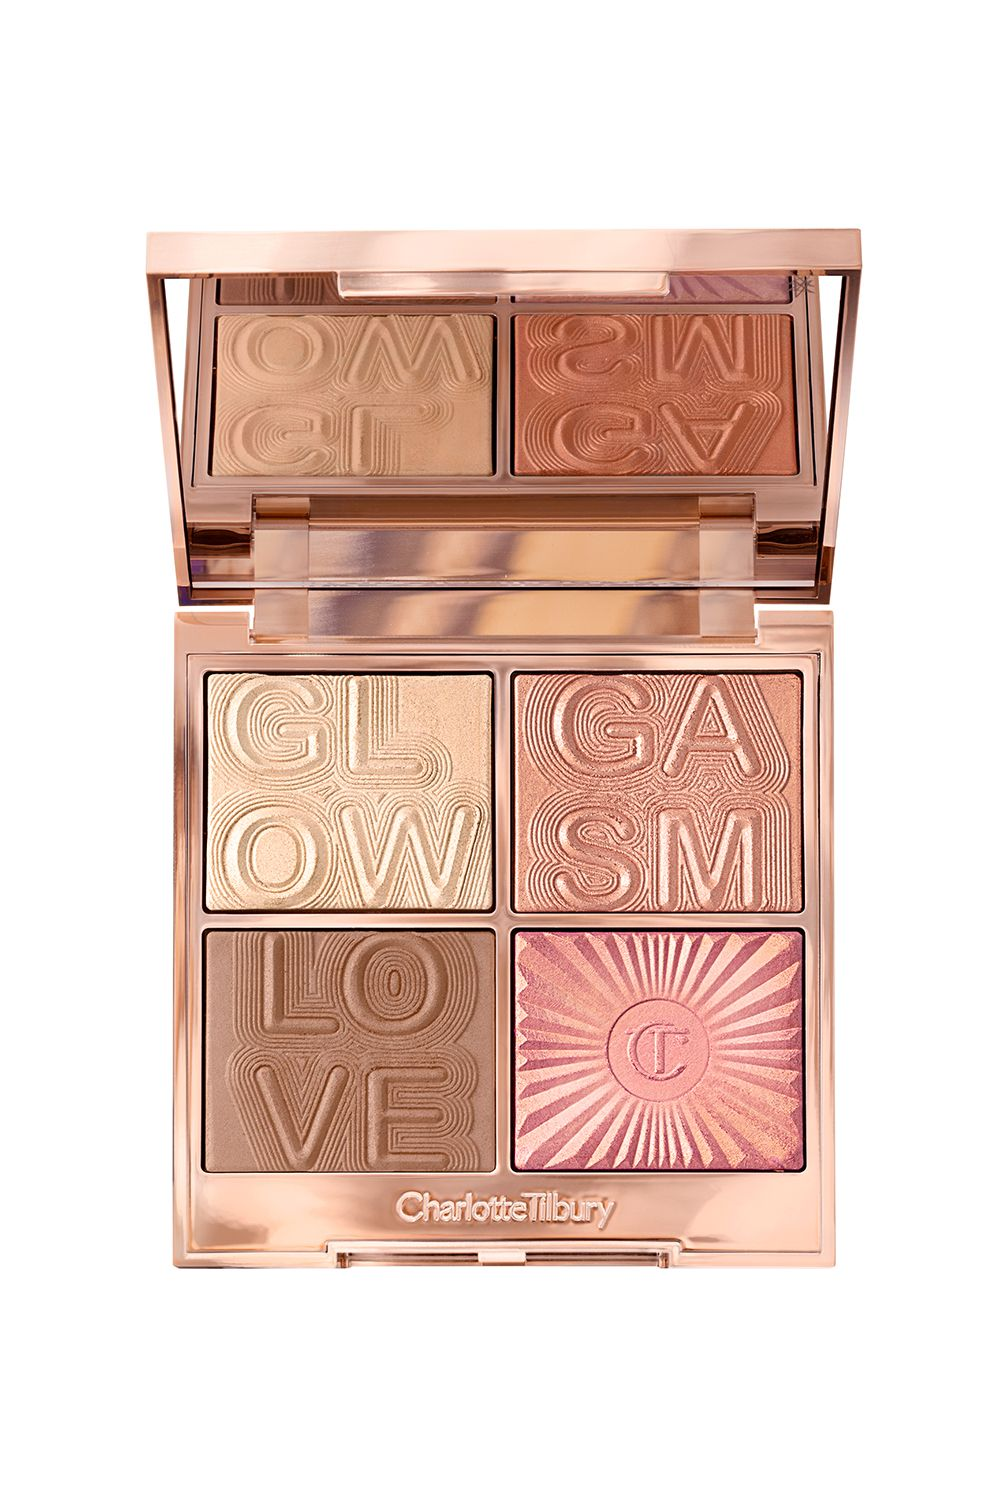 This Glowgasm Charlotte Tilbury Glowgasm Face Palette, $75 SHOP IT Honestly, this is one of those highlighters that speak for itself. One look at this lit palette is all the proof you need that these shades are seriously stunning.